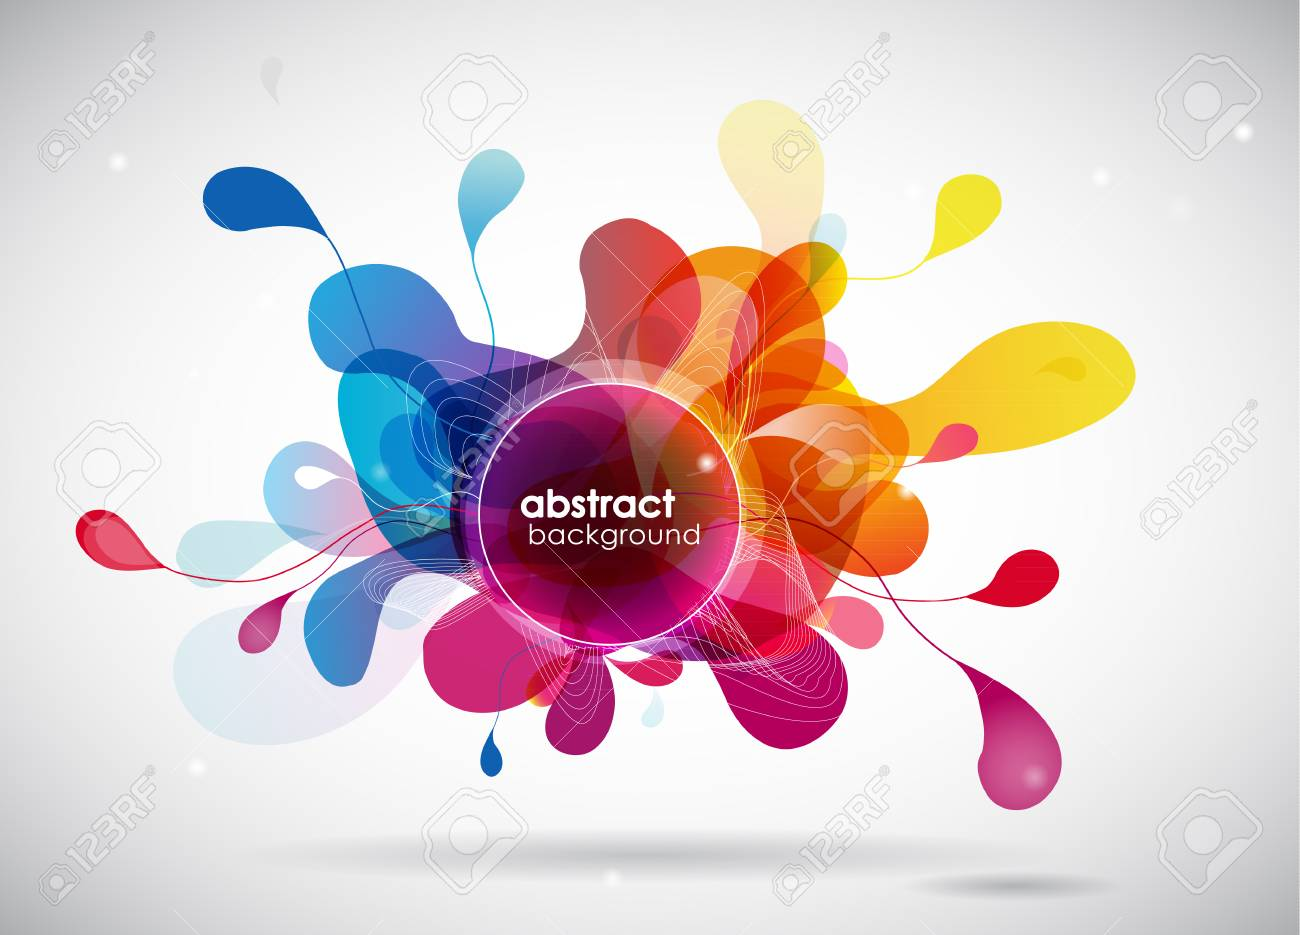 abstract colored background with circles. - 34372682